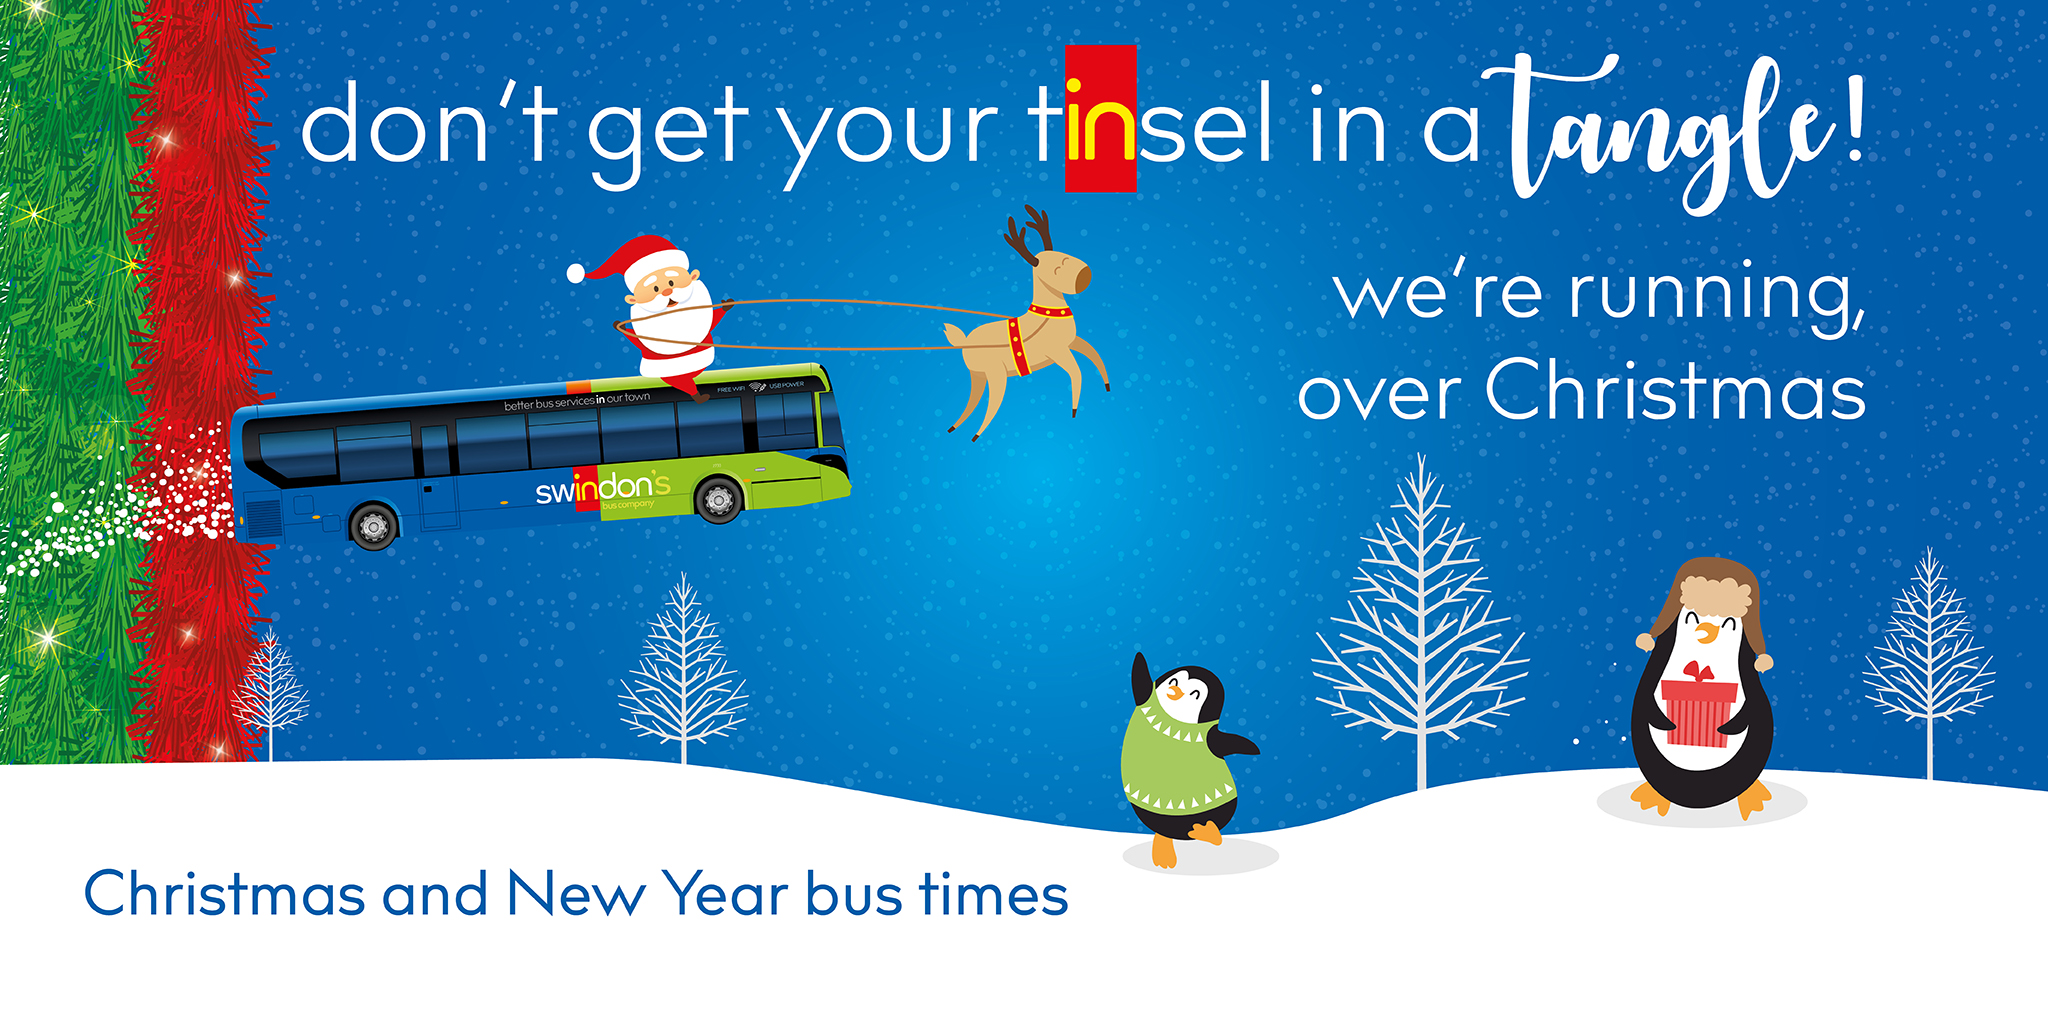 Swindon Christmas and New Year bus times